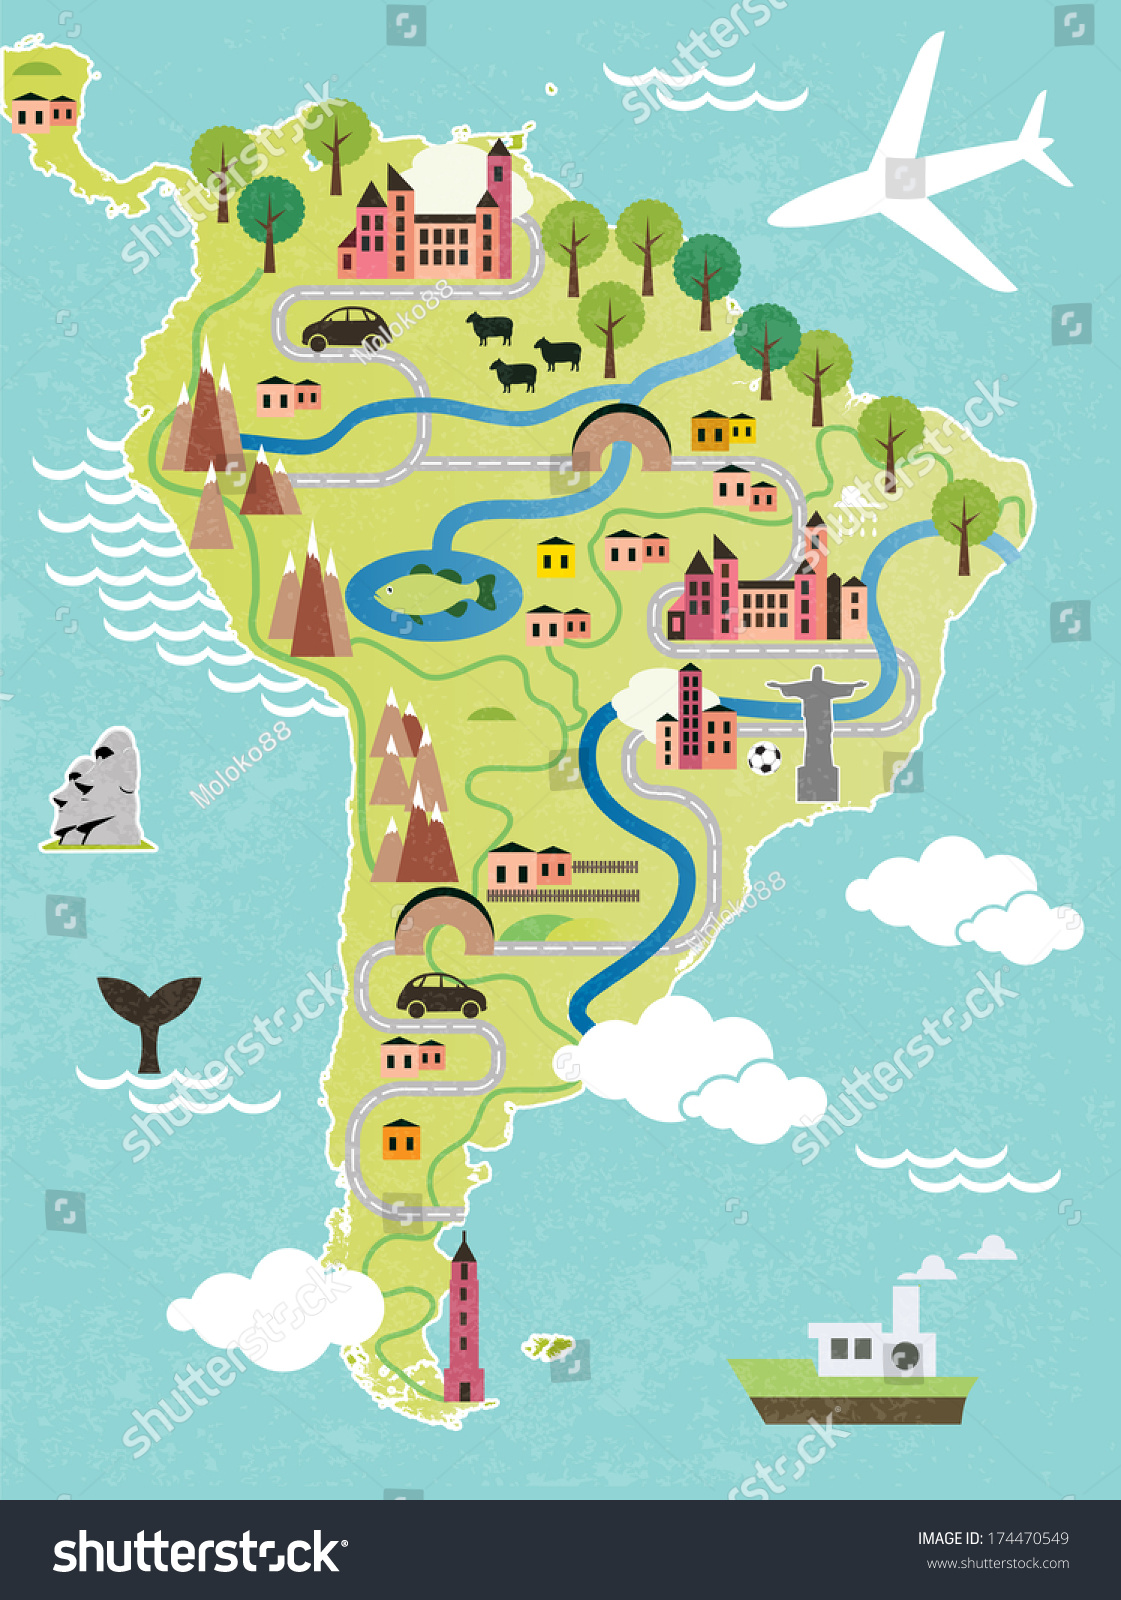 south america map clipart - photo #17